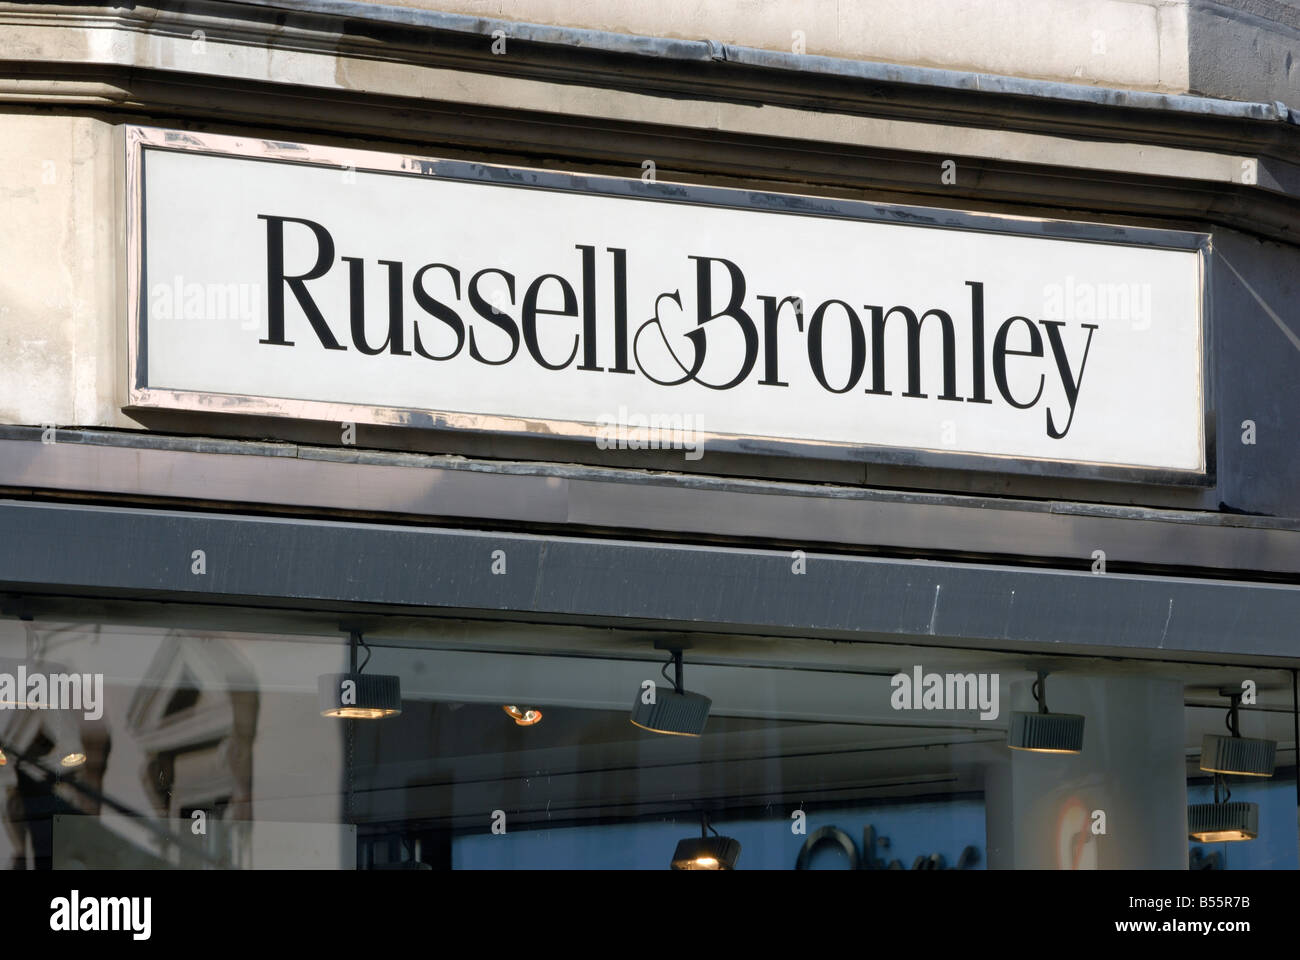 Russell & Bromley - Stock Image